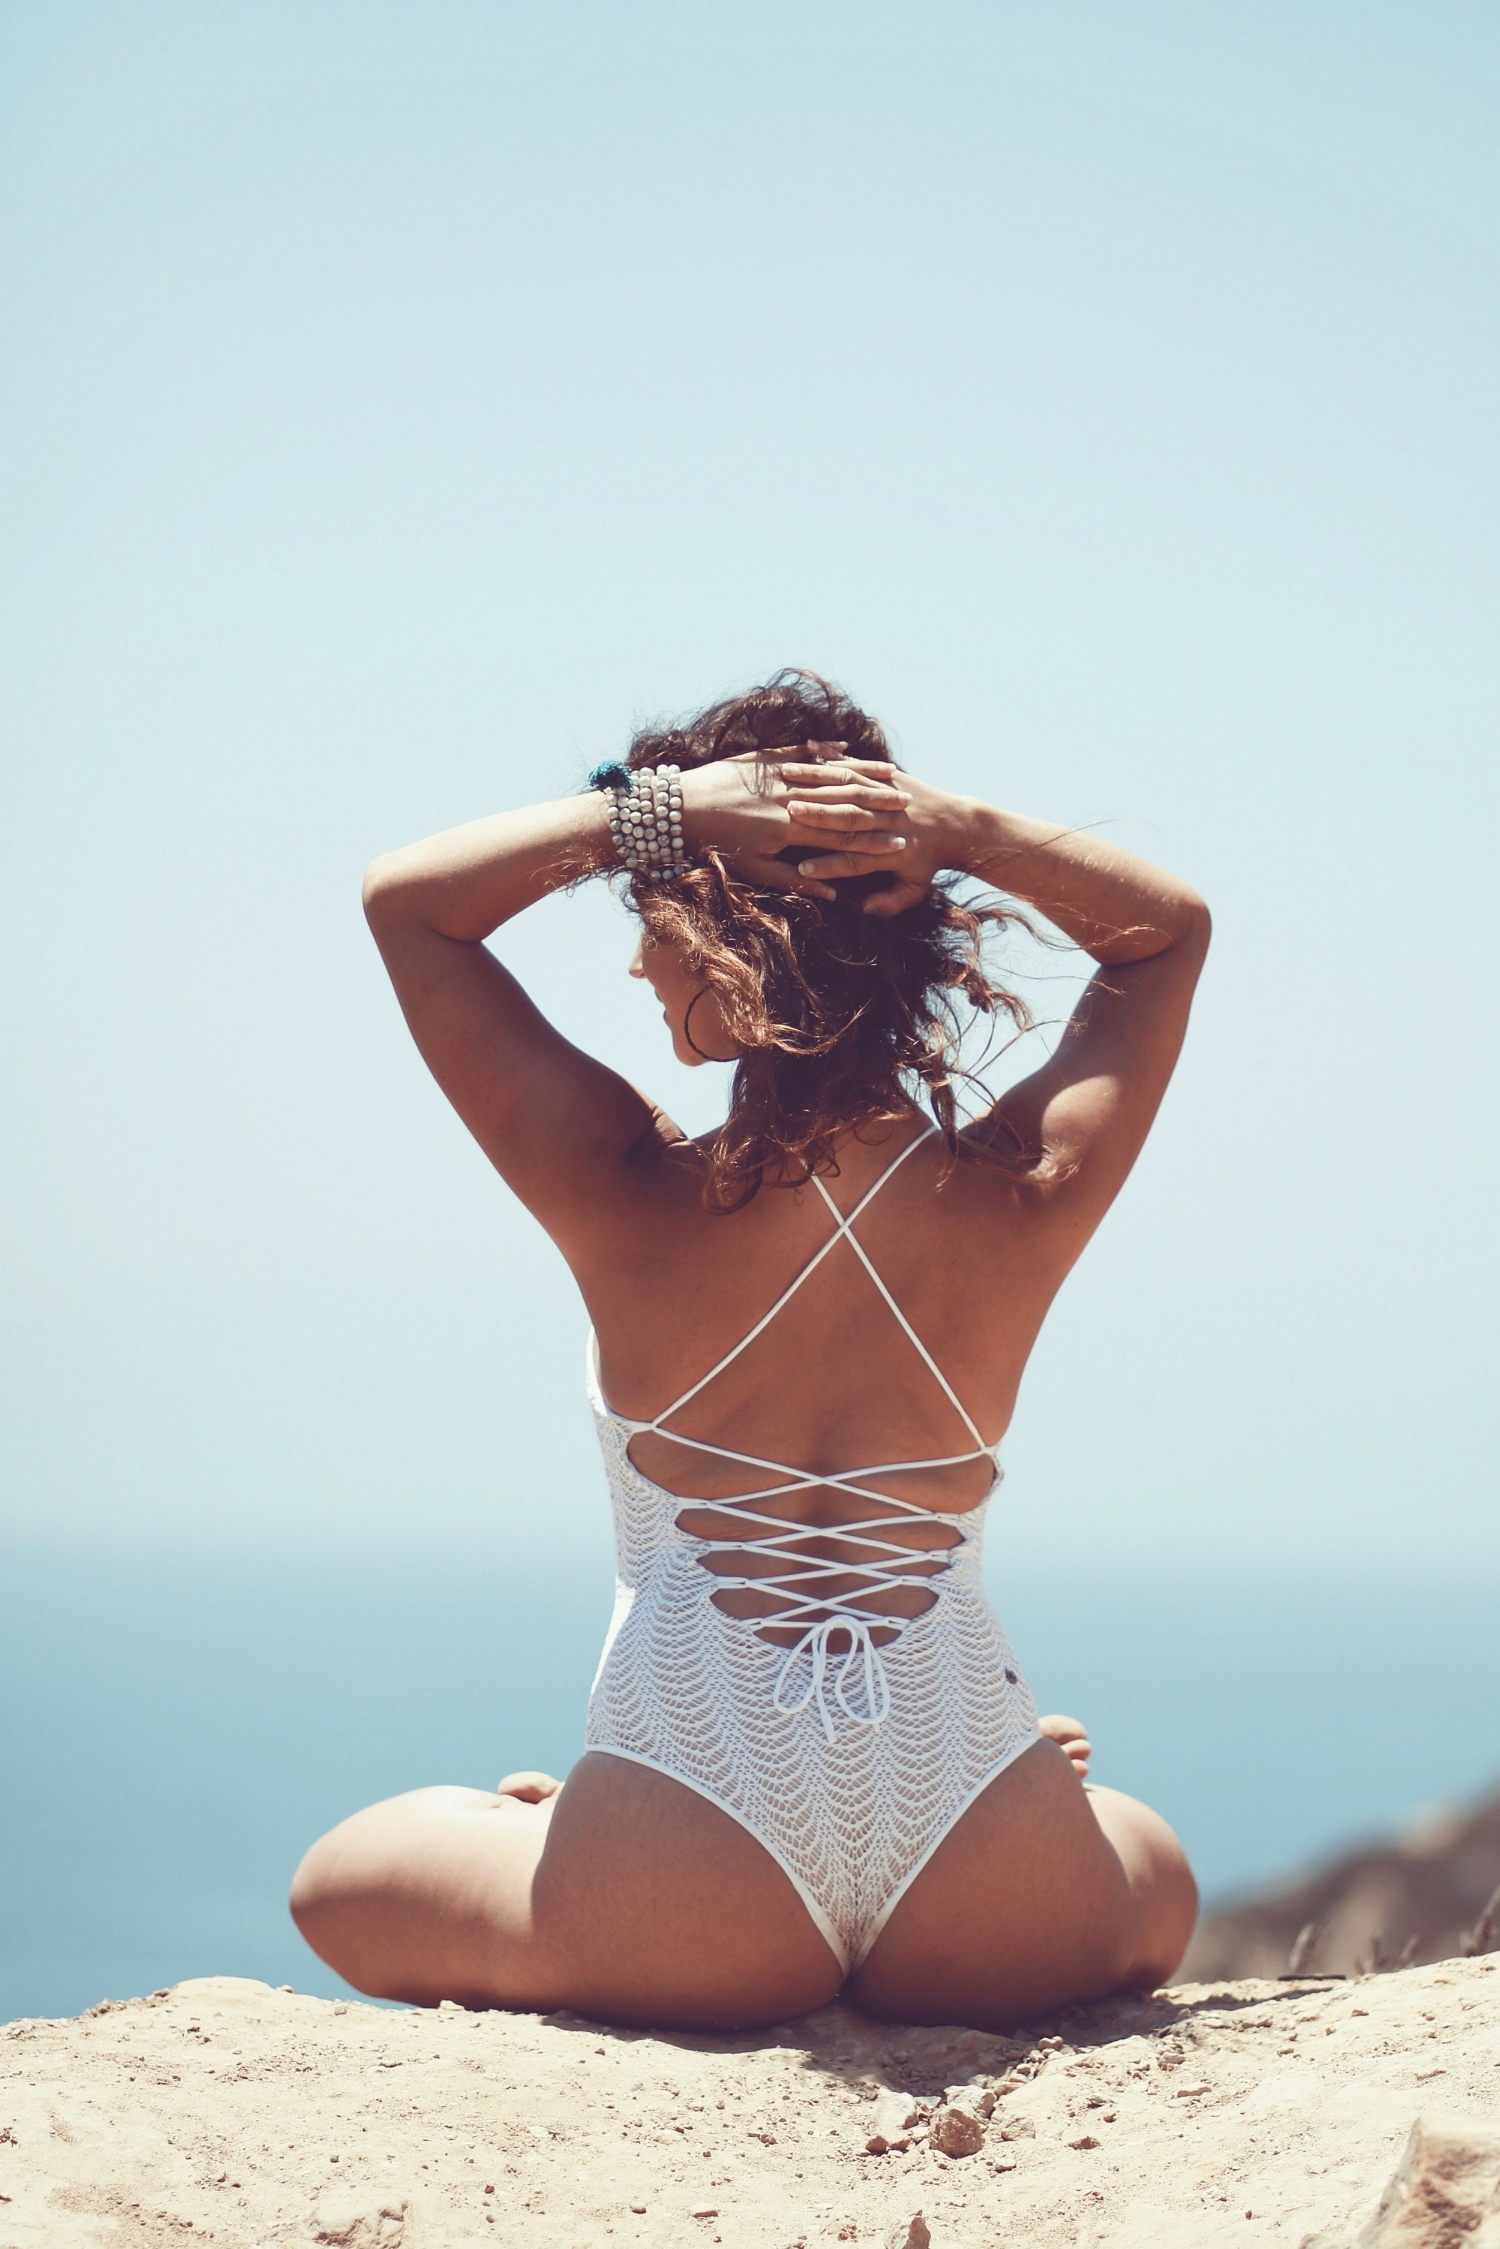 - WAYARA SWIMSUITEveryone should have at least one super cute one-piece swimsuit. The Wayara is your answer. Our adorable knitted overlay and lace up back makes this one of a kind!